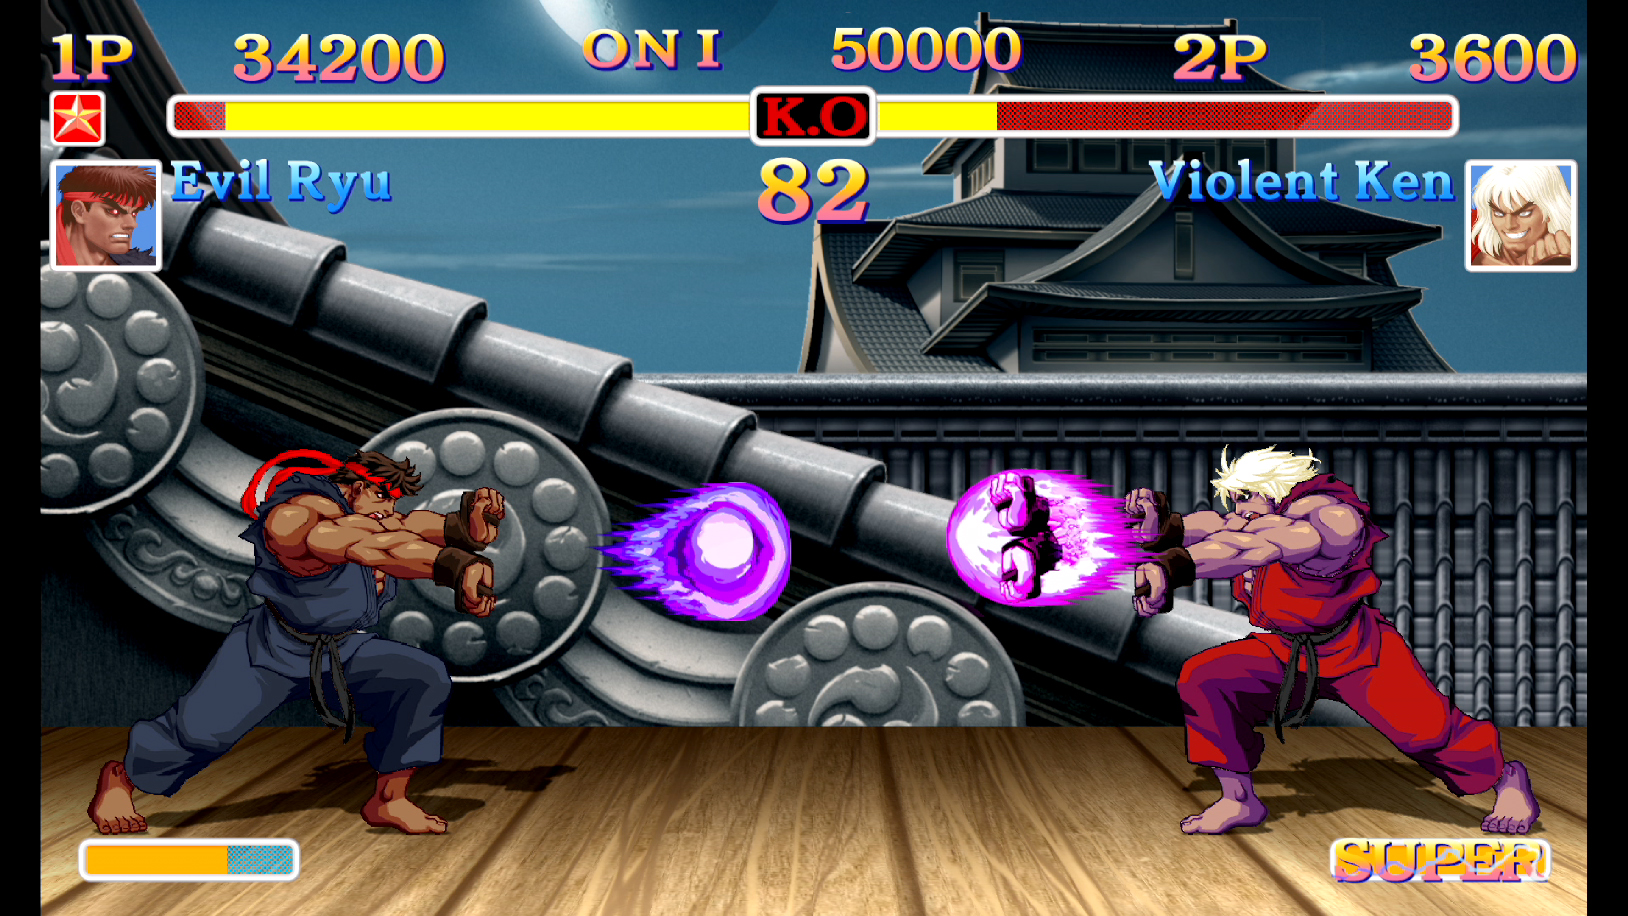 USF2screen5